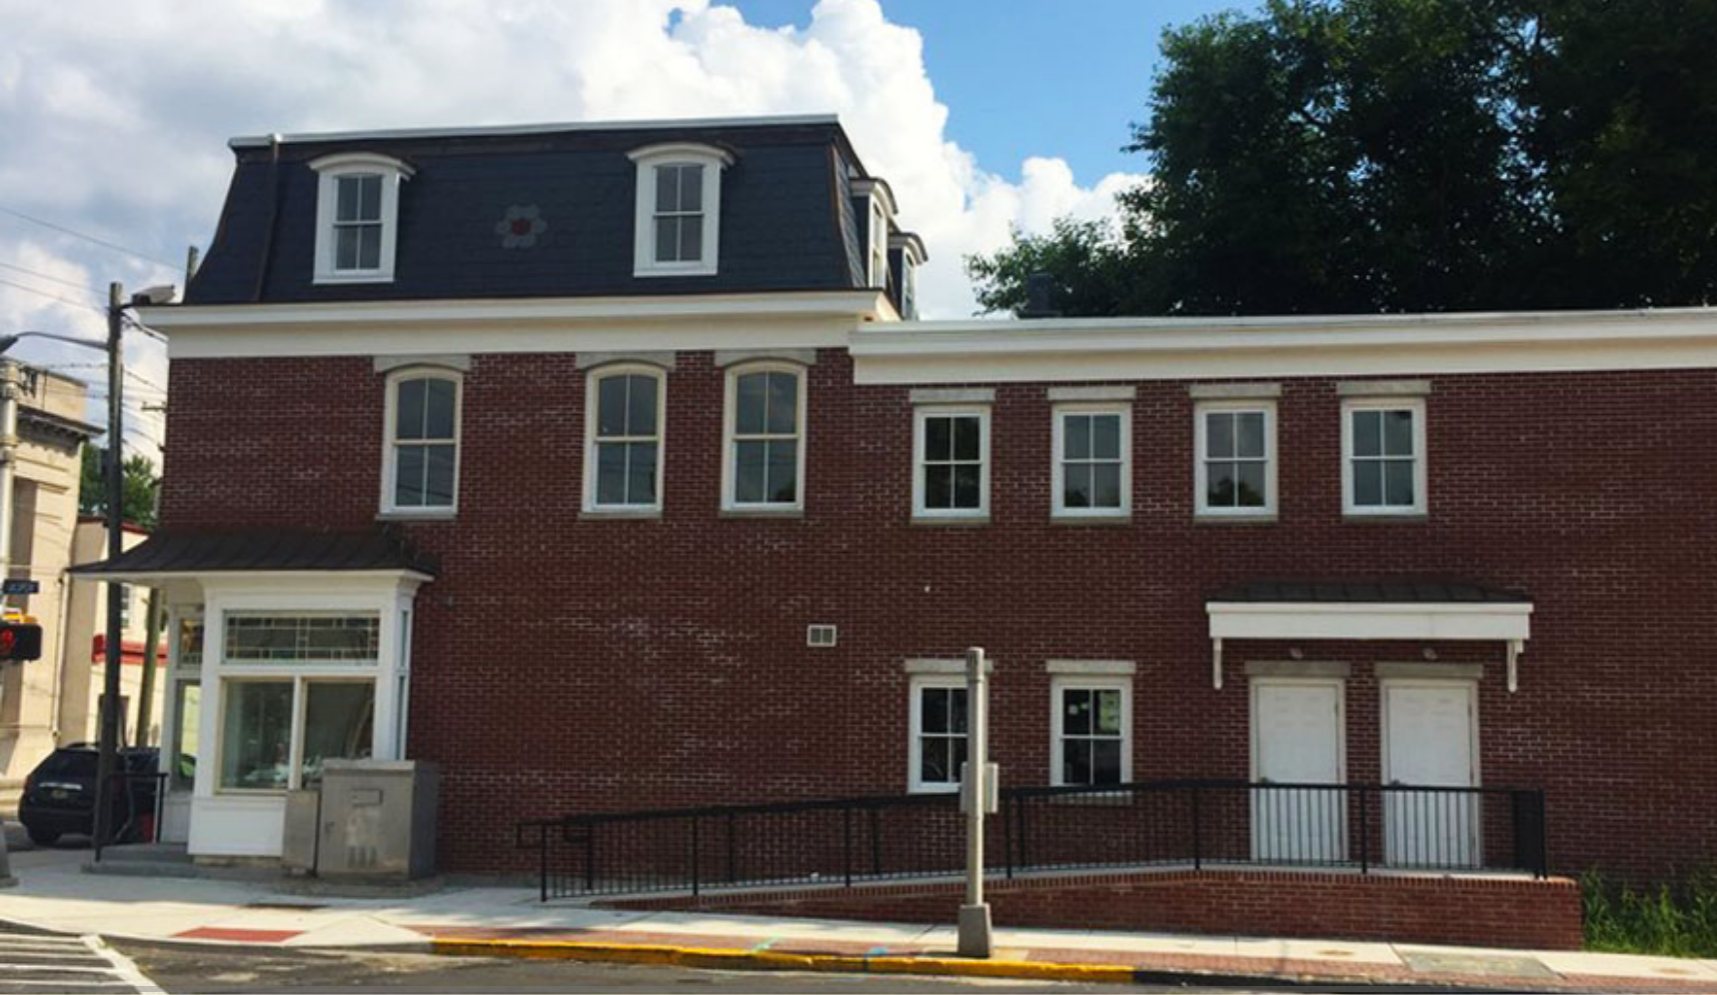 A view of the renovated Nick Virgilio Writers House as seen from Jasper Street.